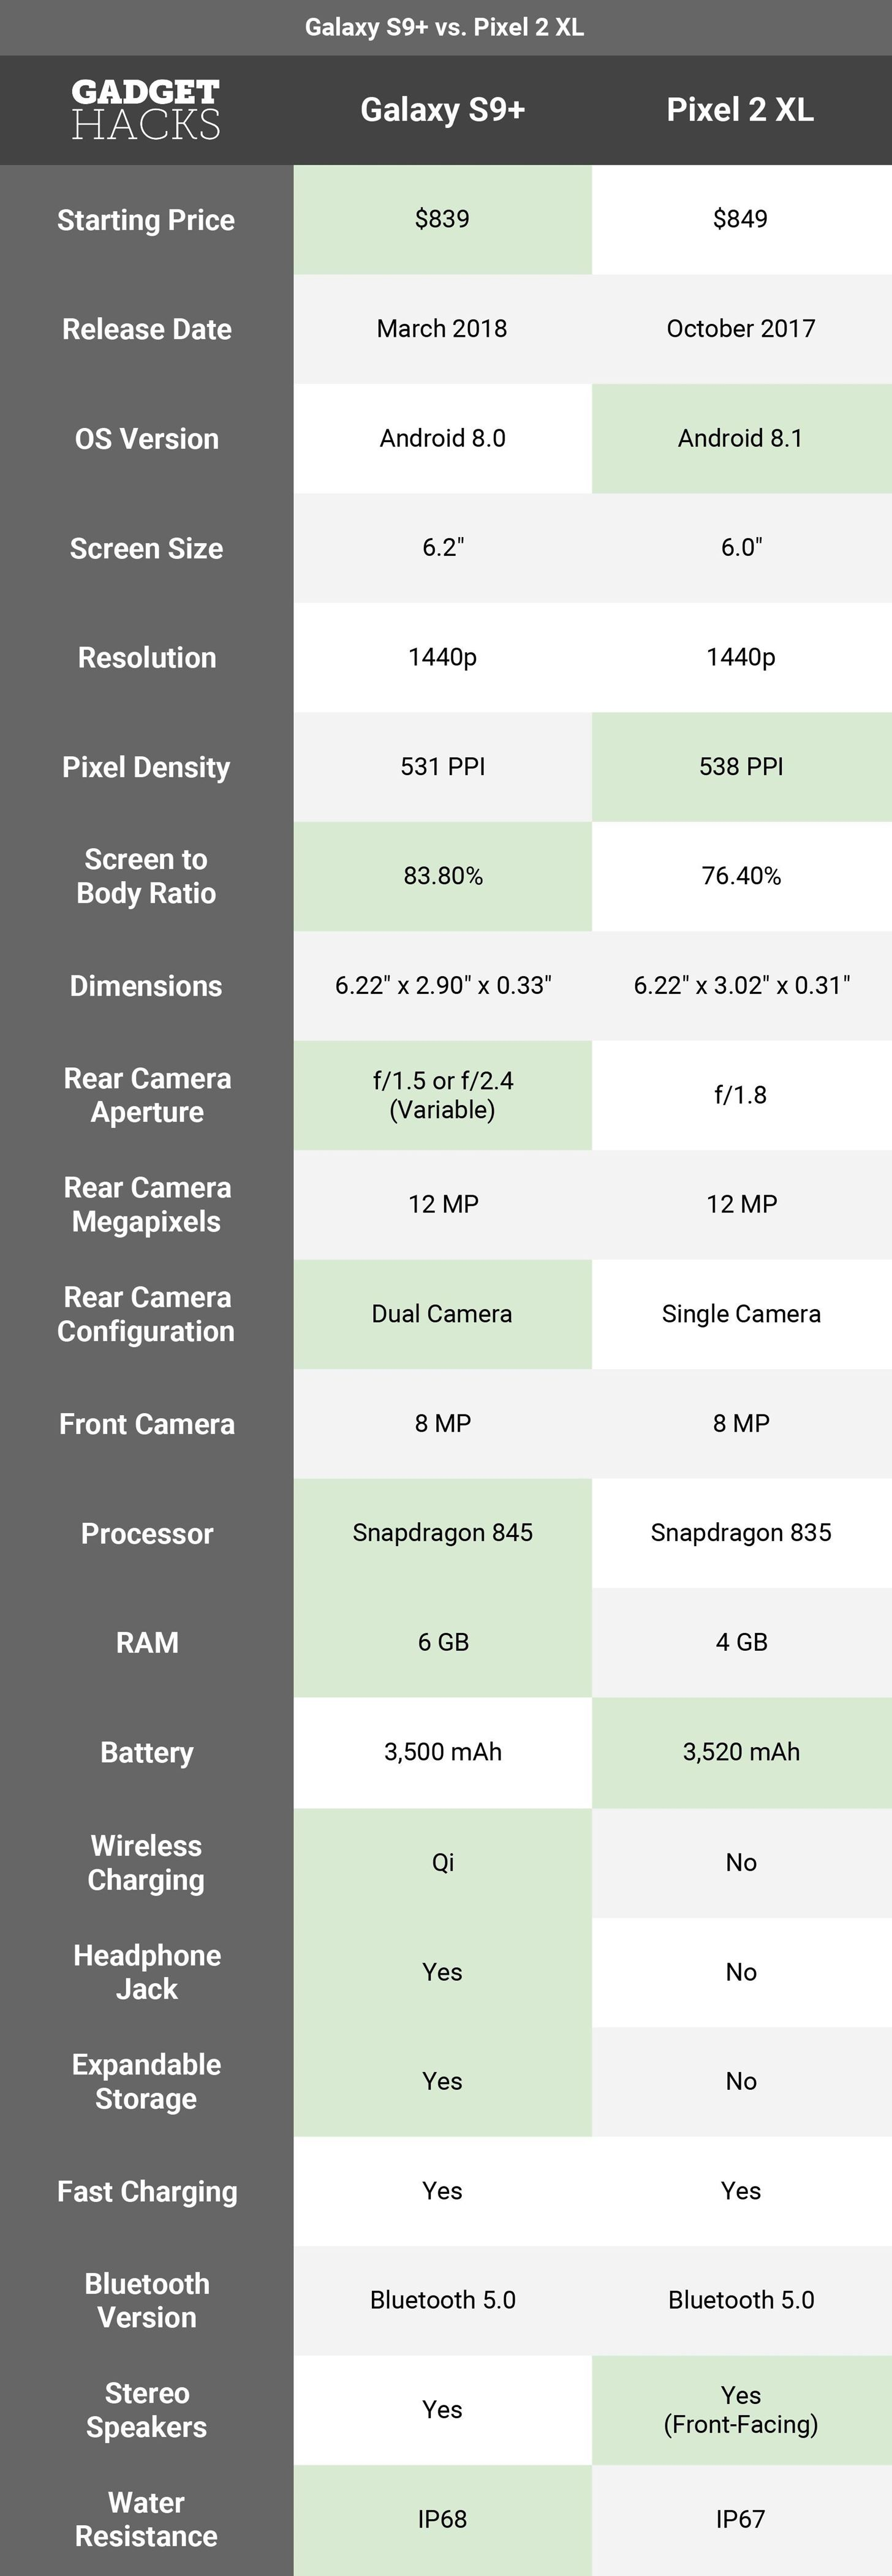 Google vs. Samsung: How Does the Galaxy S9+ Stack Up Against the Pixel 2XL?